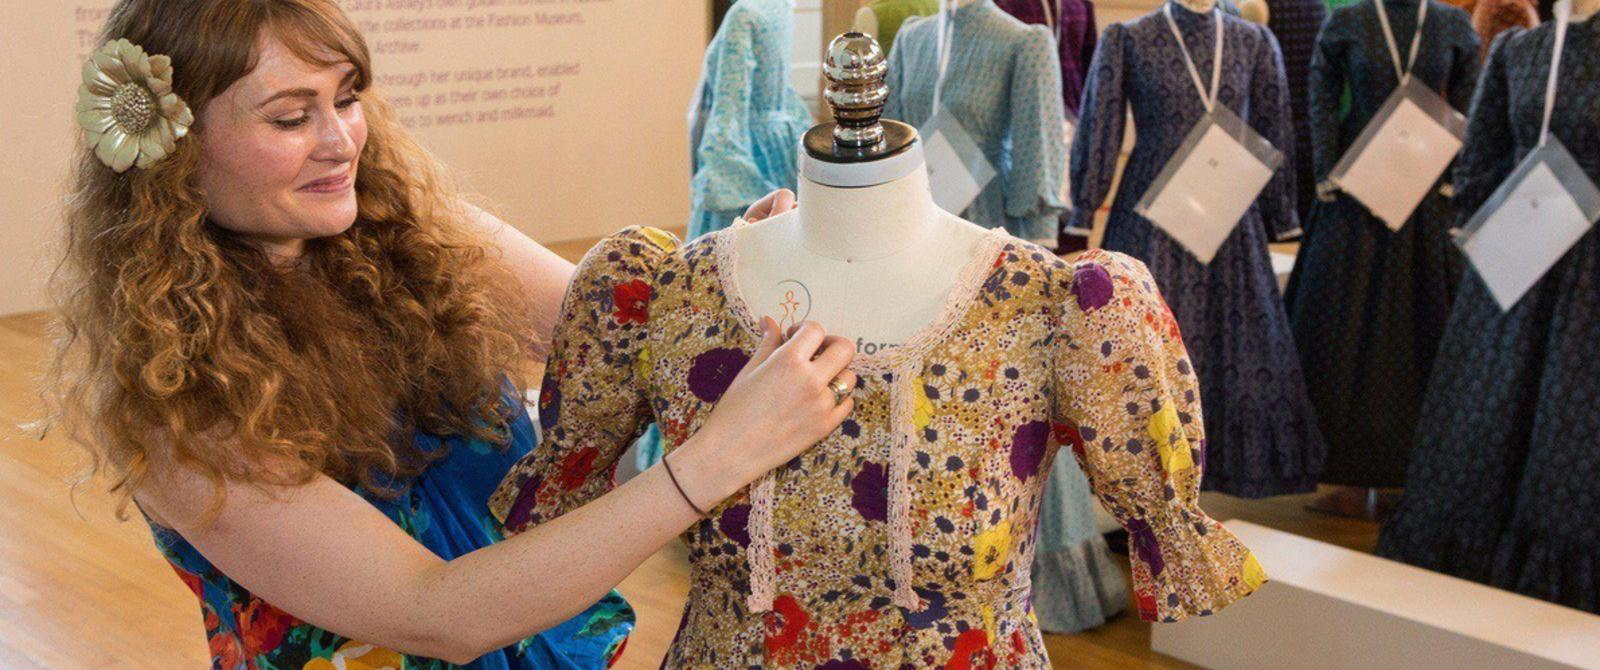 Image: Staff preparing ensembles for an exhibition